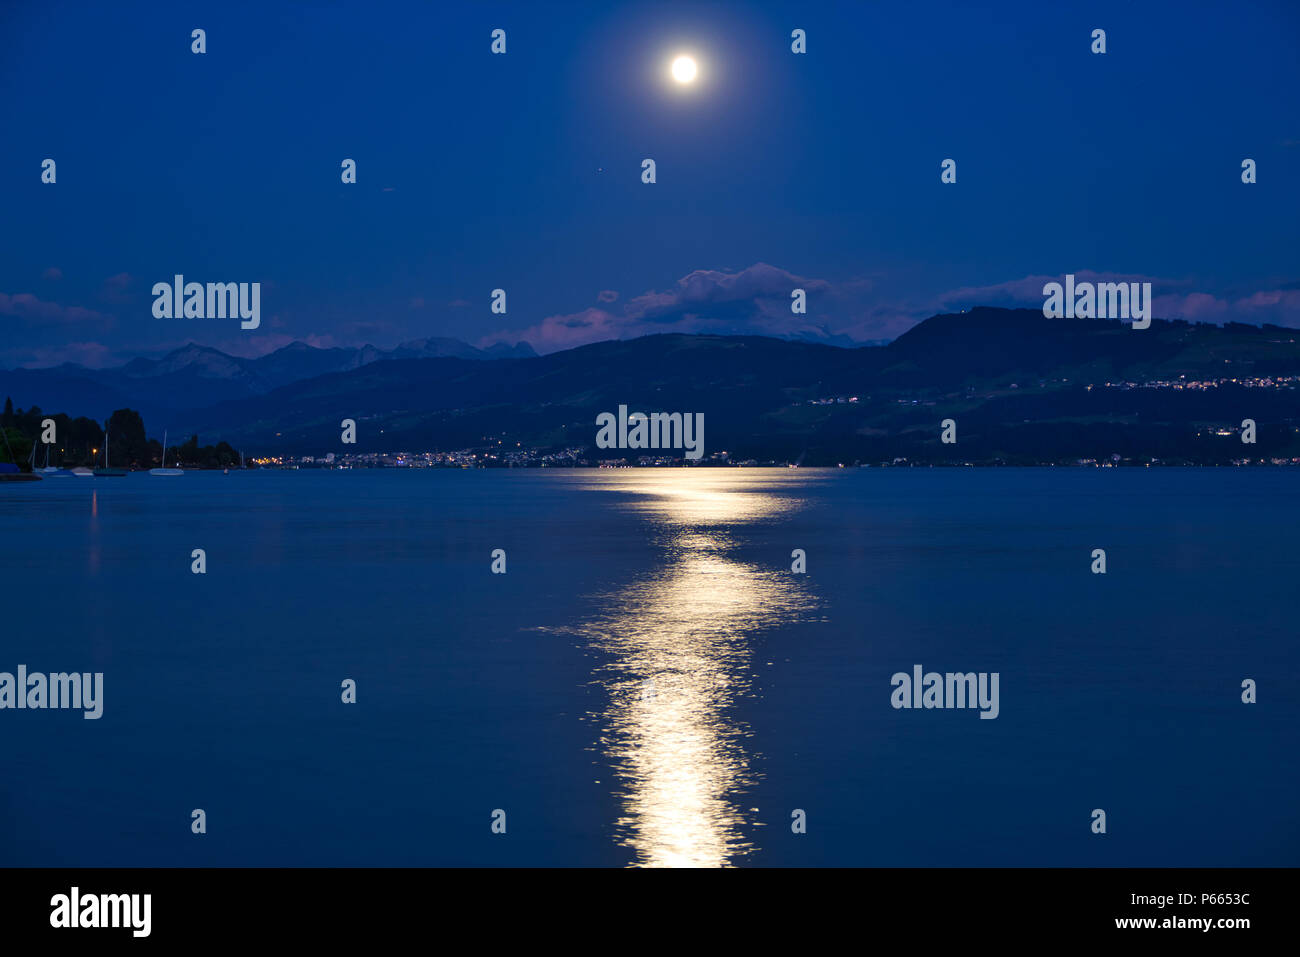 Moon light shadow - Stock Image